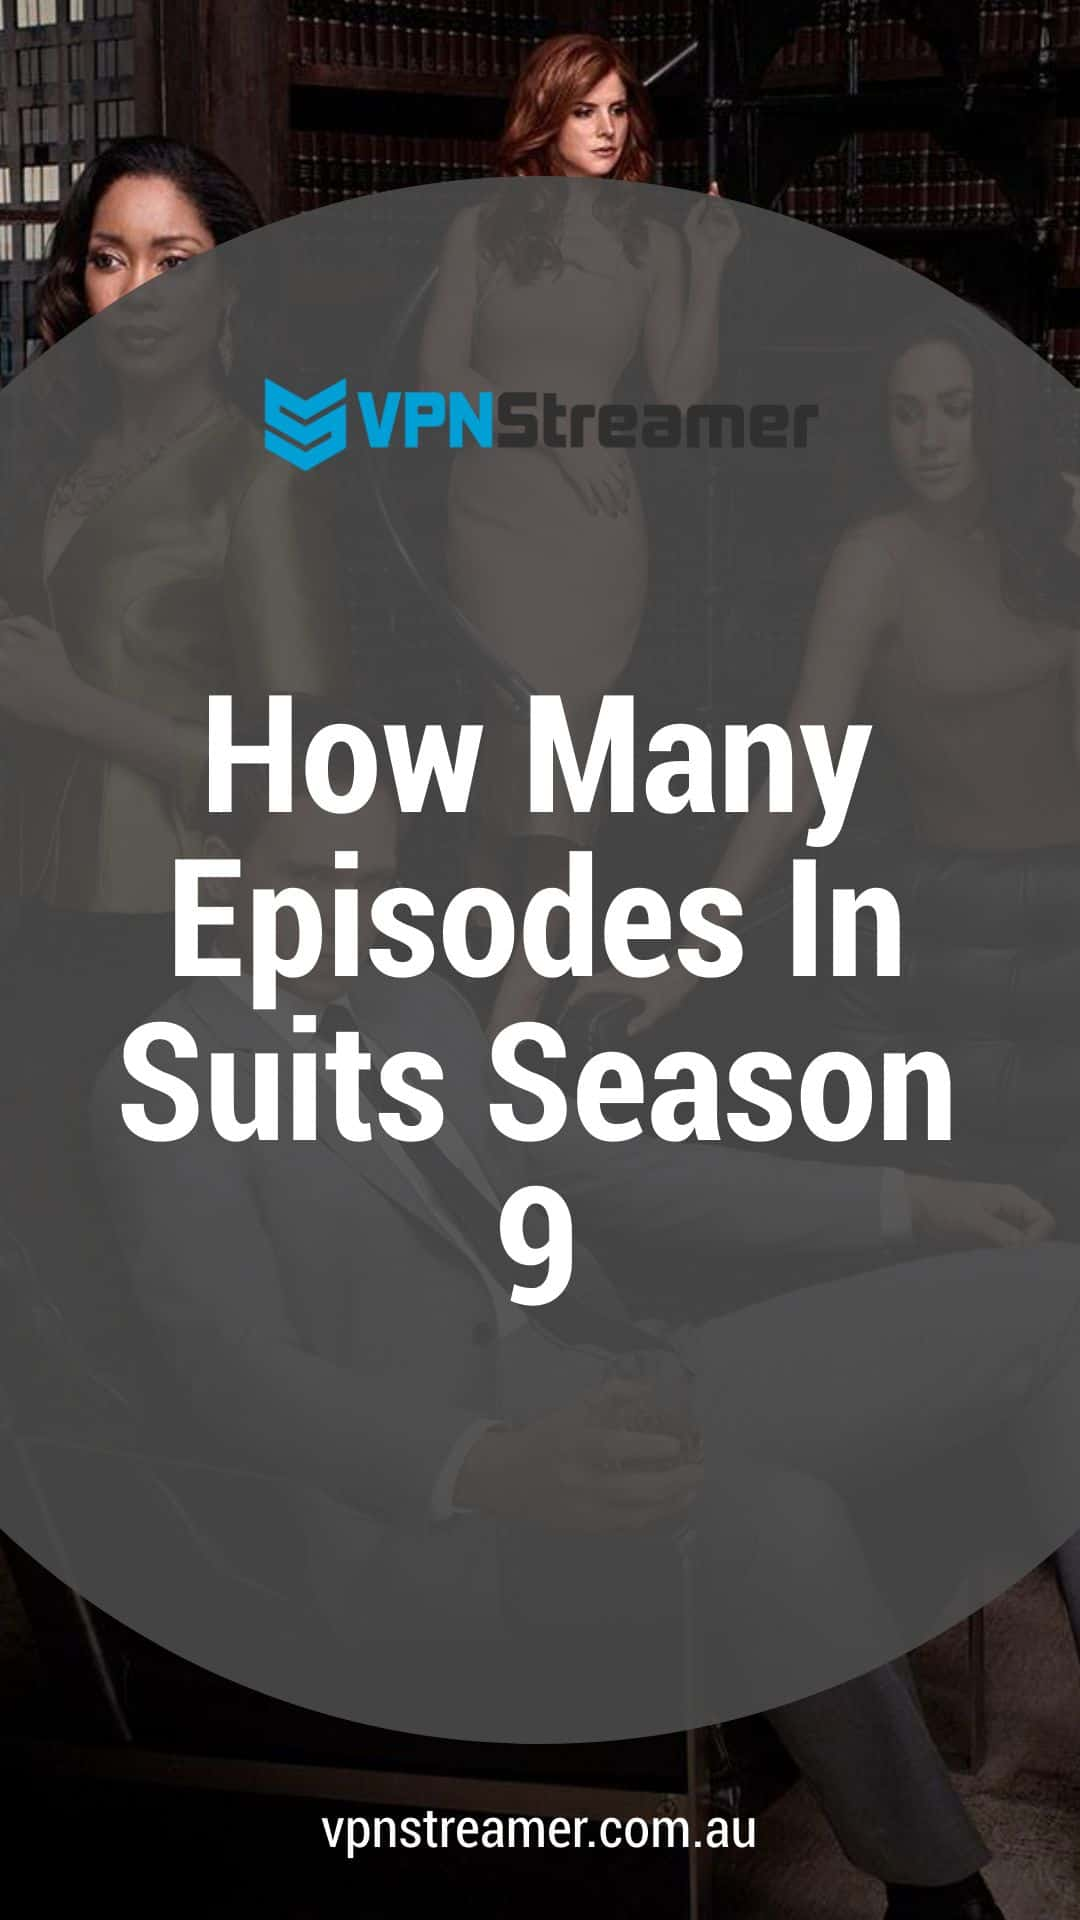 How Many Episodes In Suits Season 9